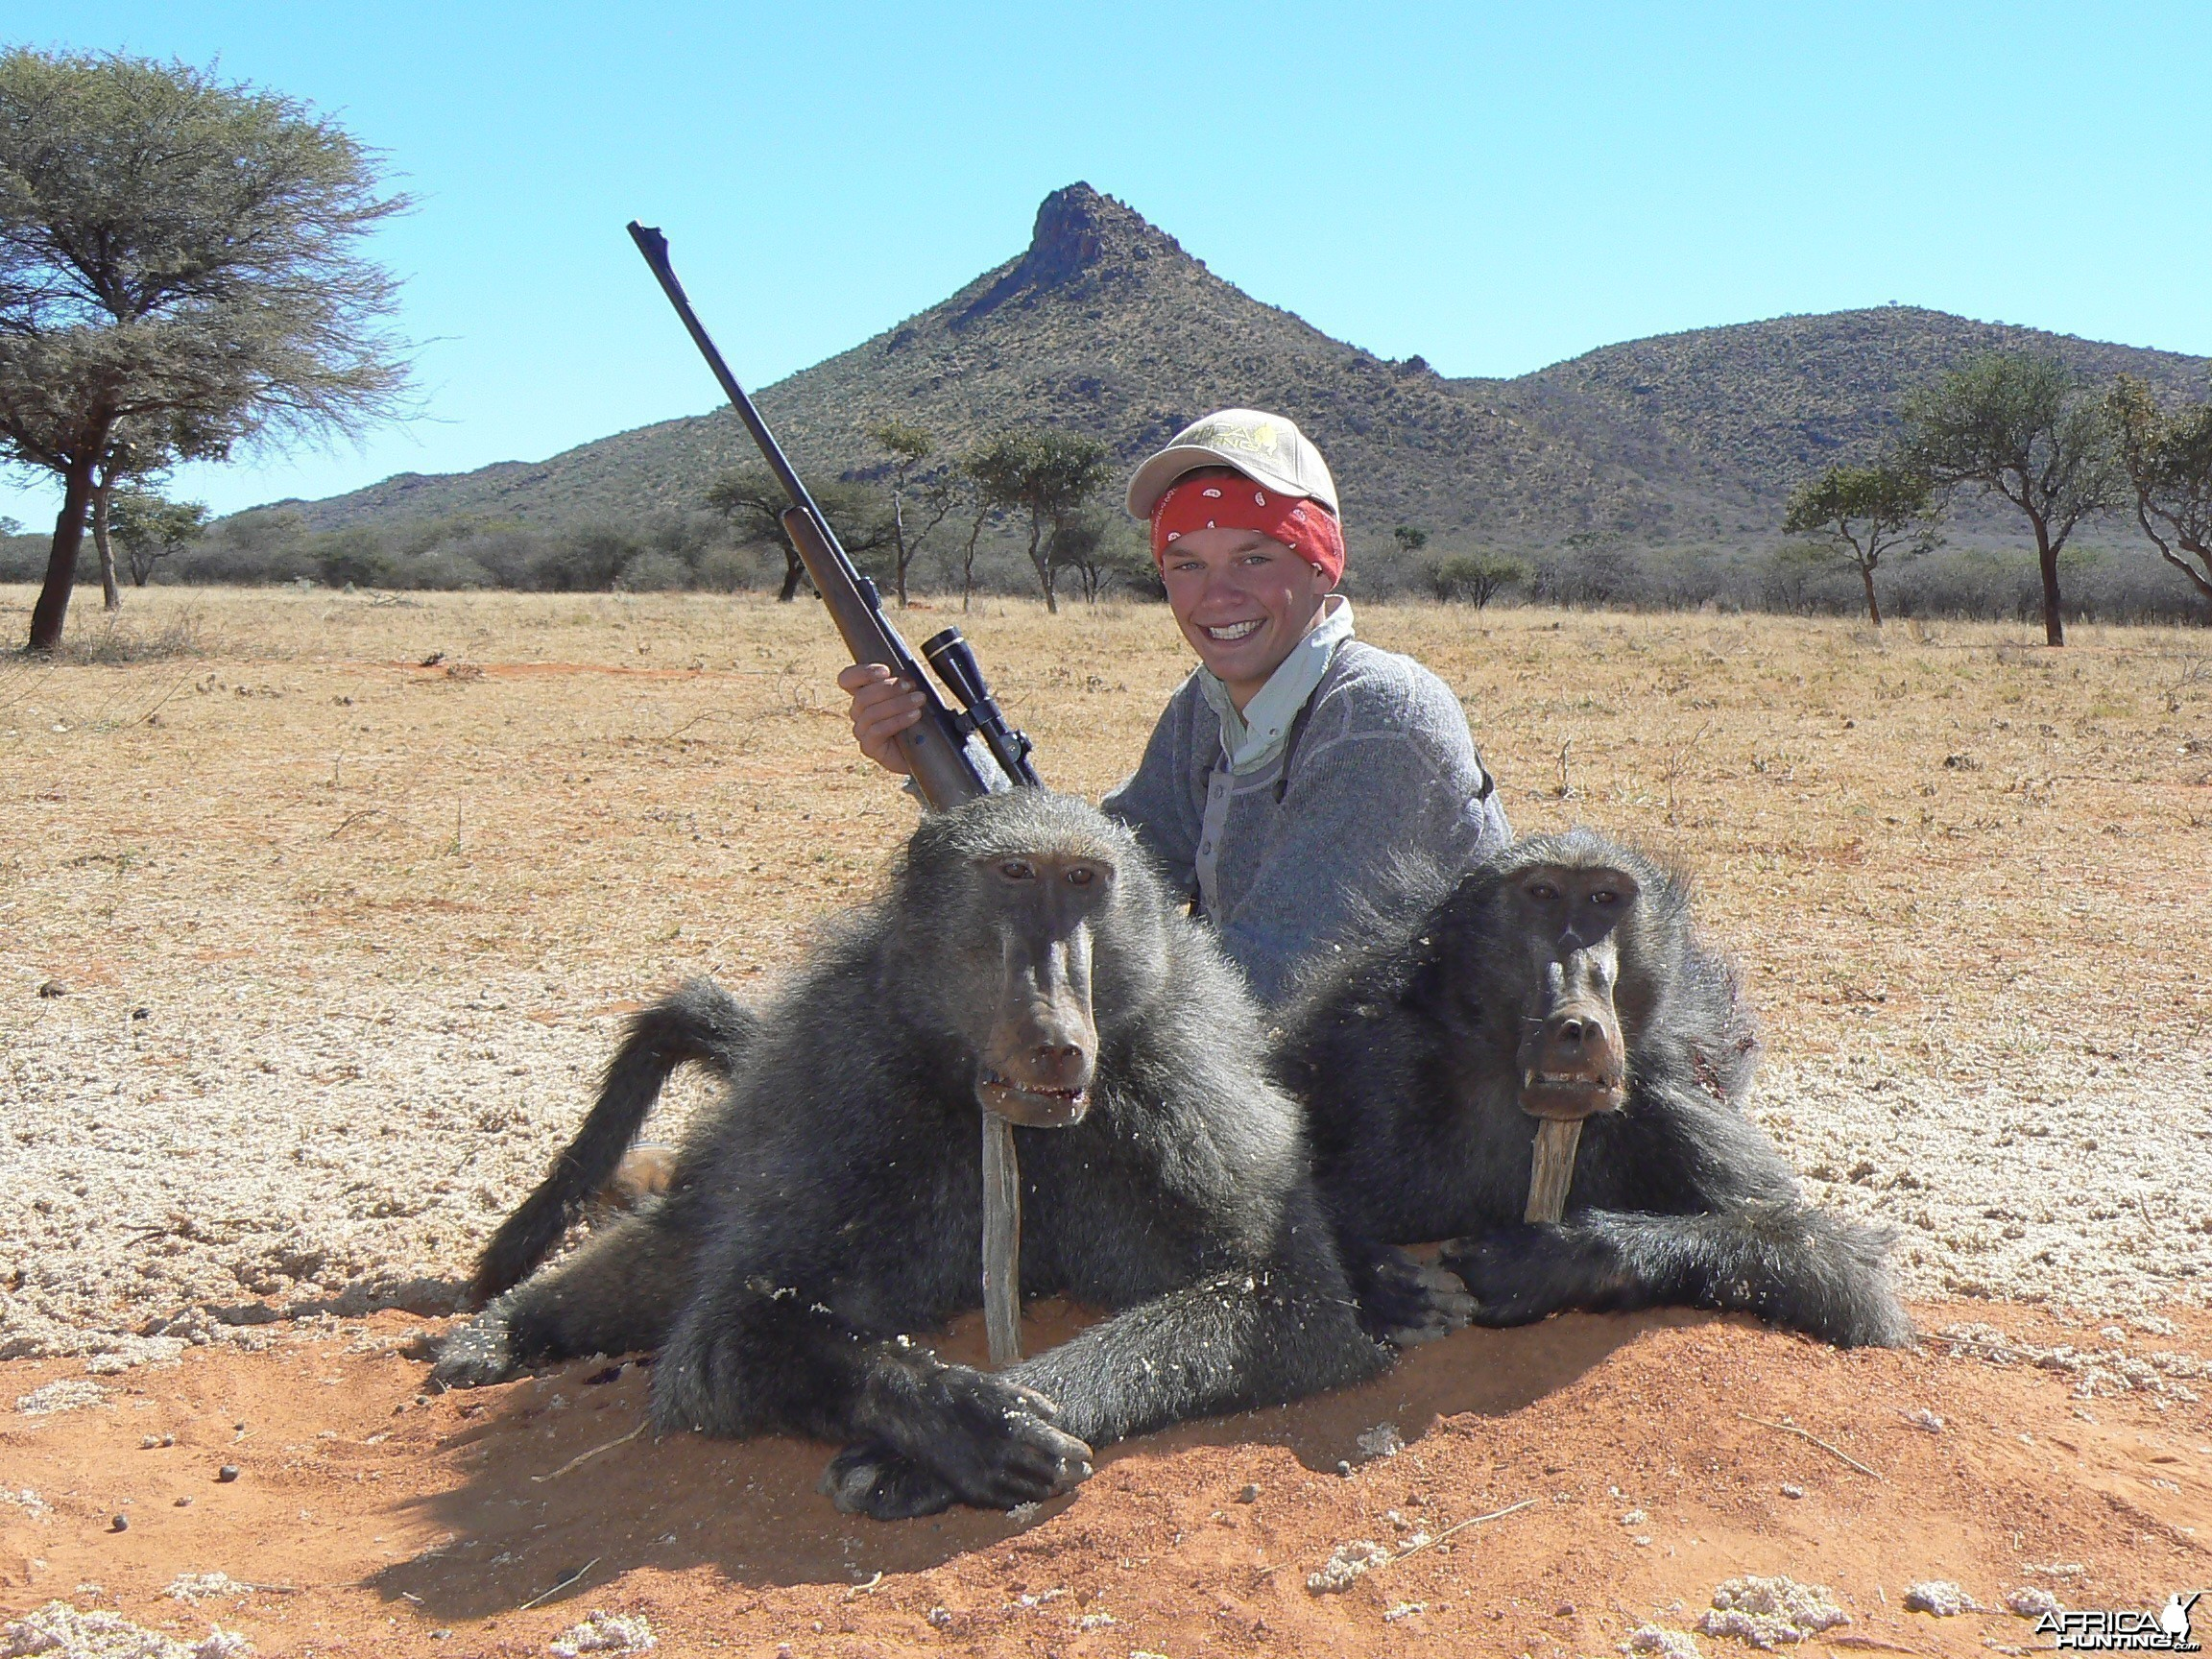 Hunting Chacma baboon in Namibia